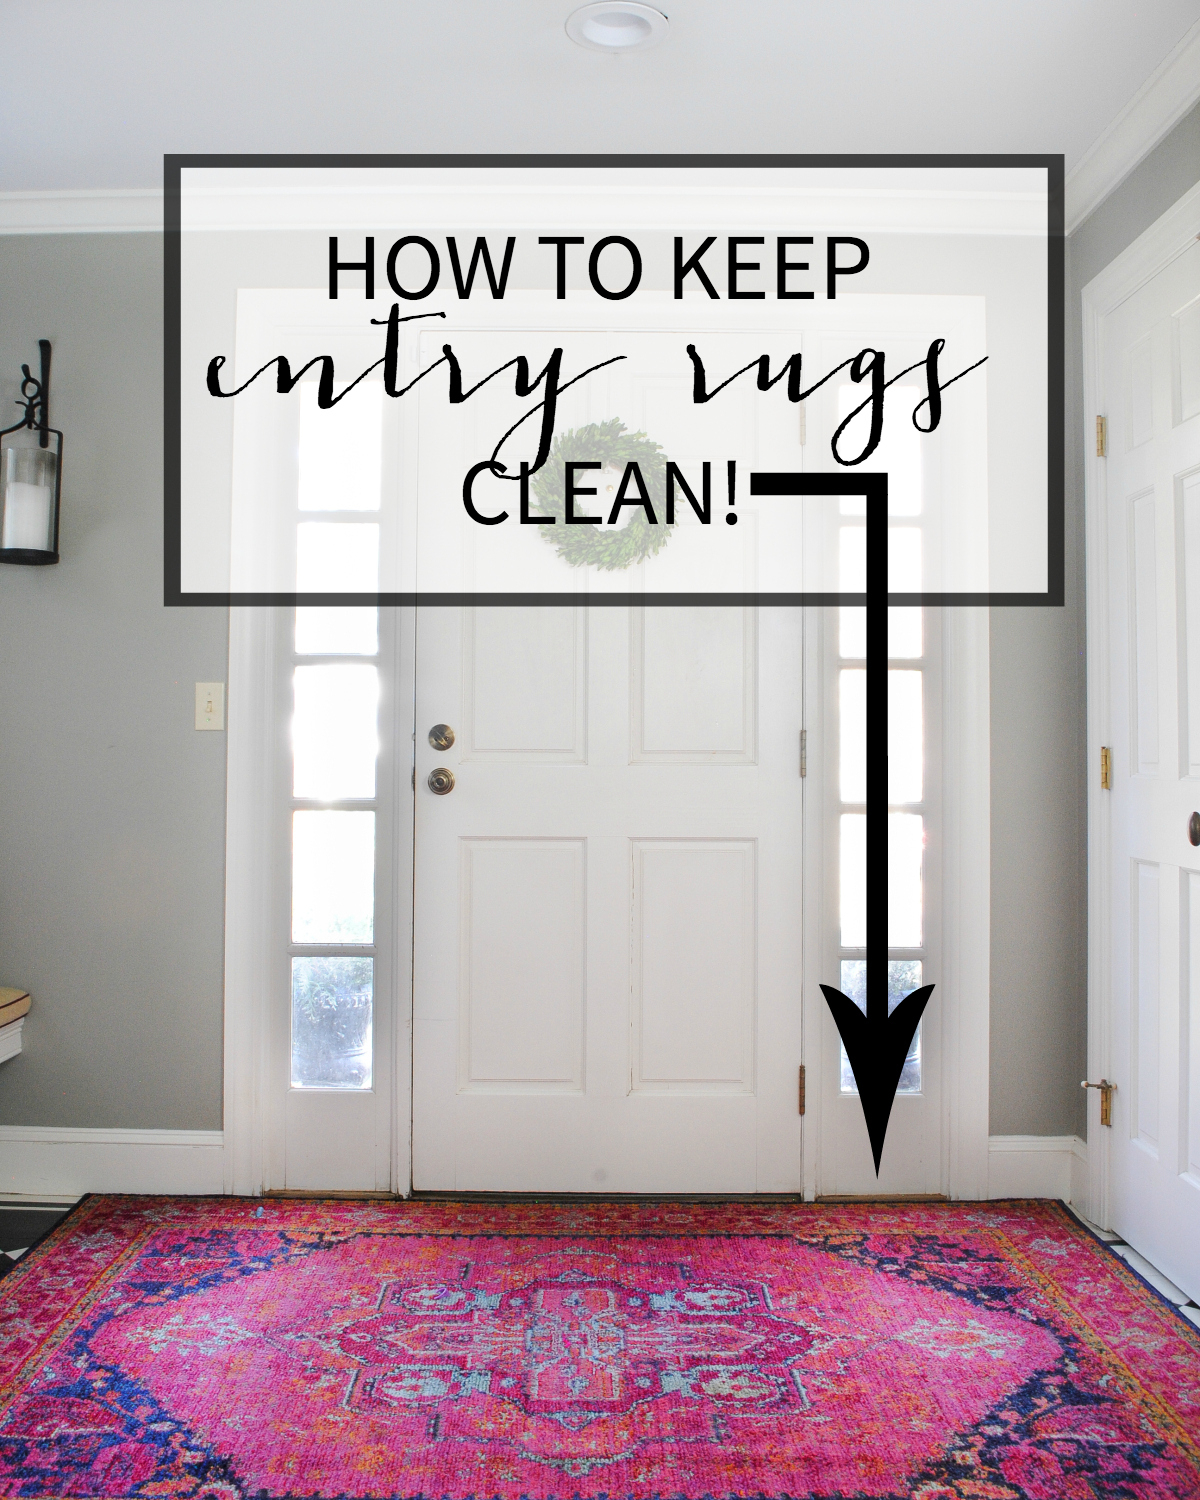 Easy tips for how to keep entry rugs clean!